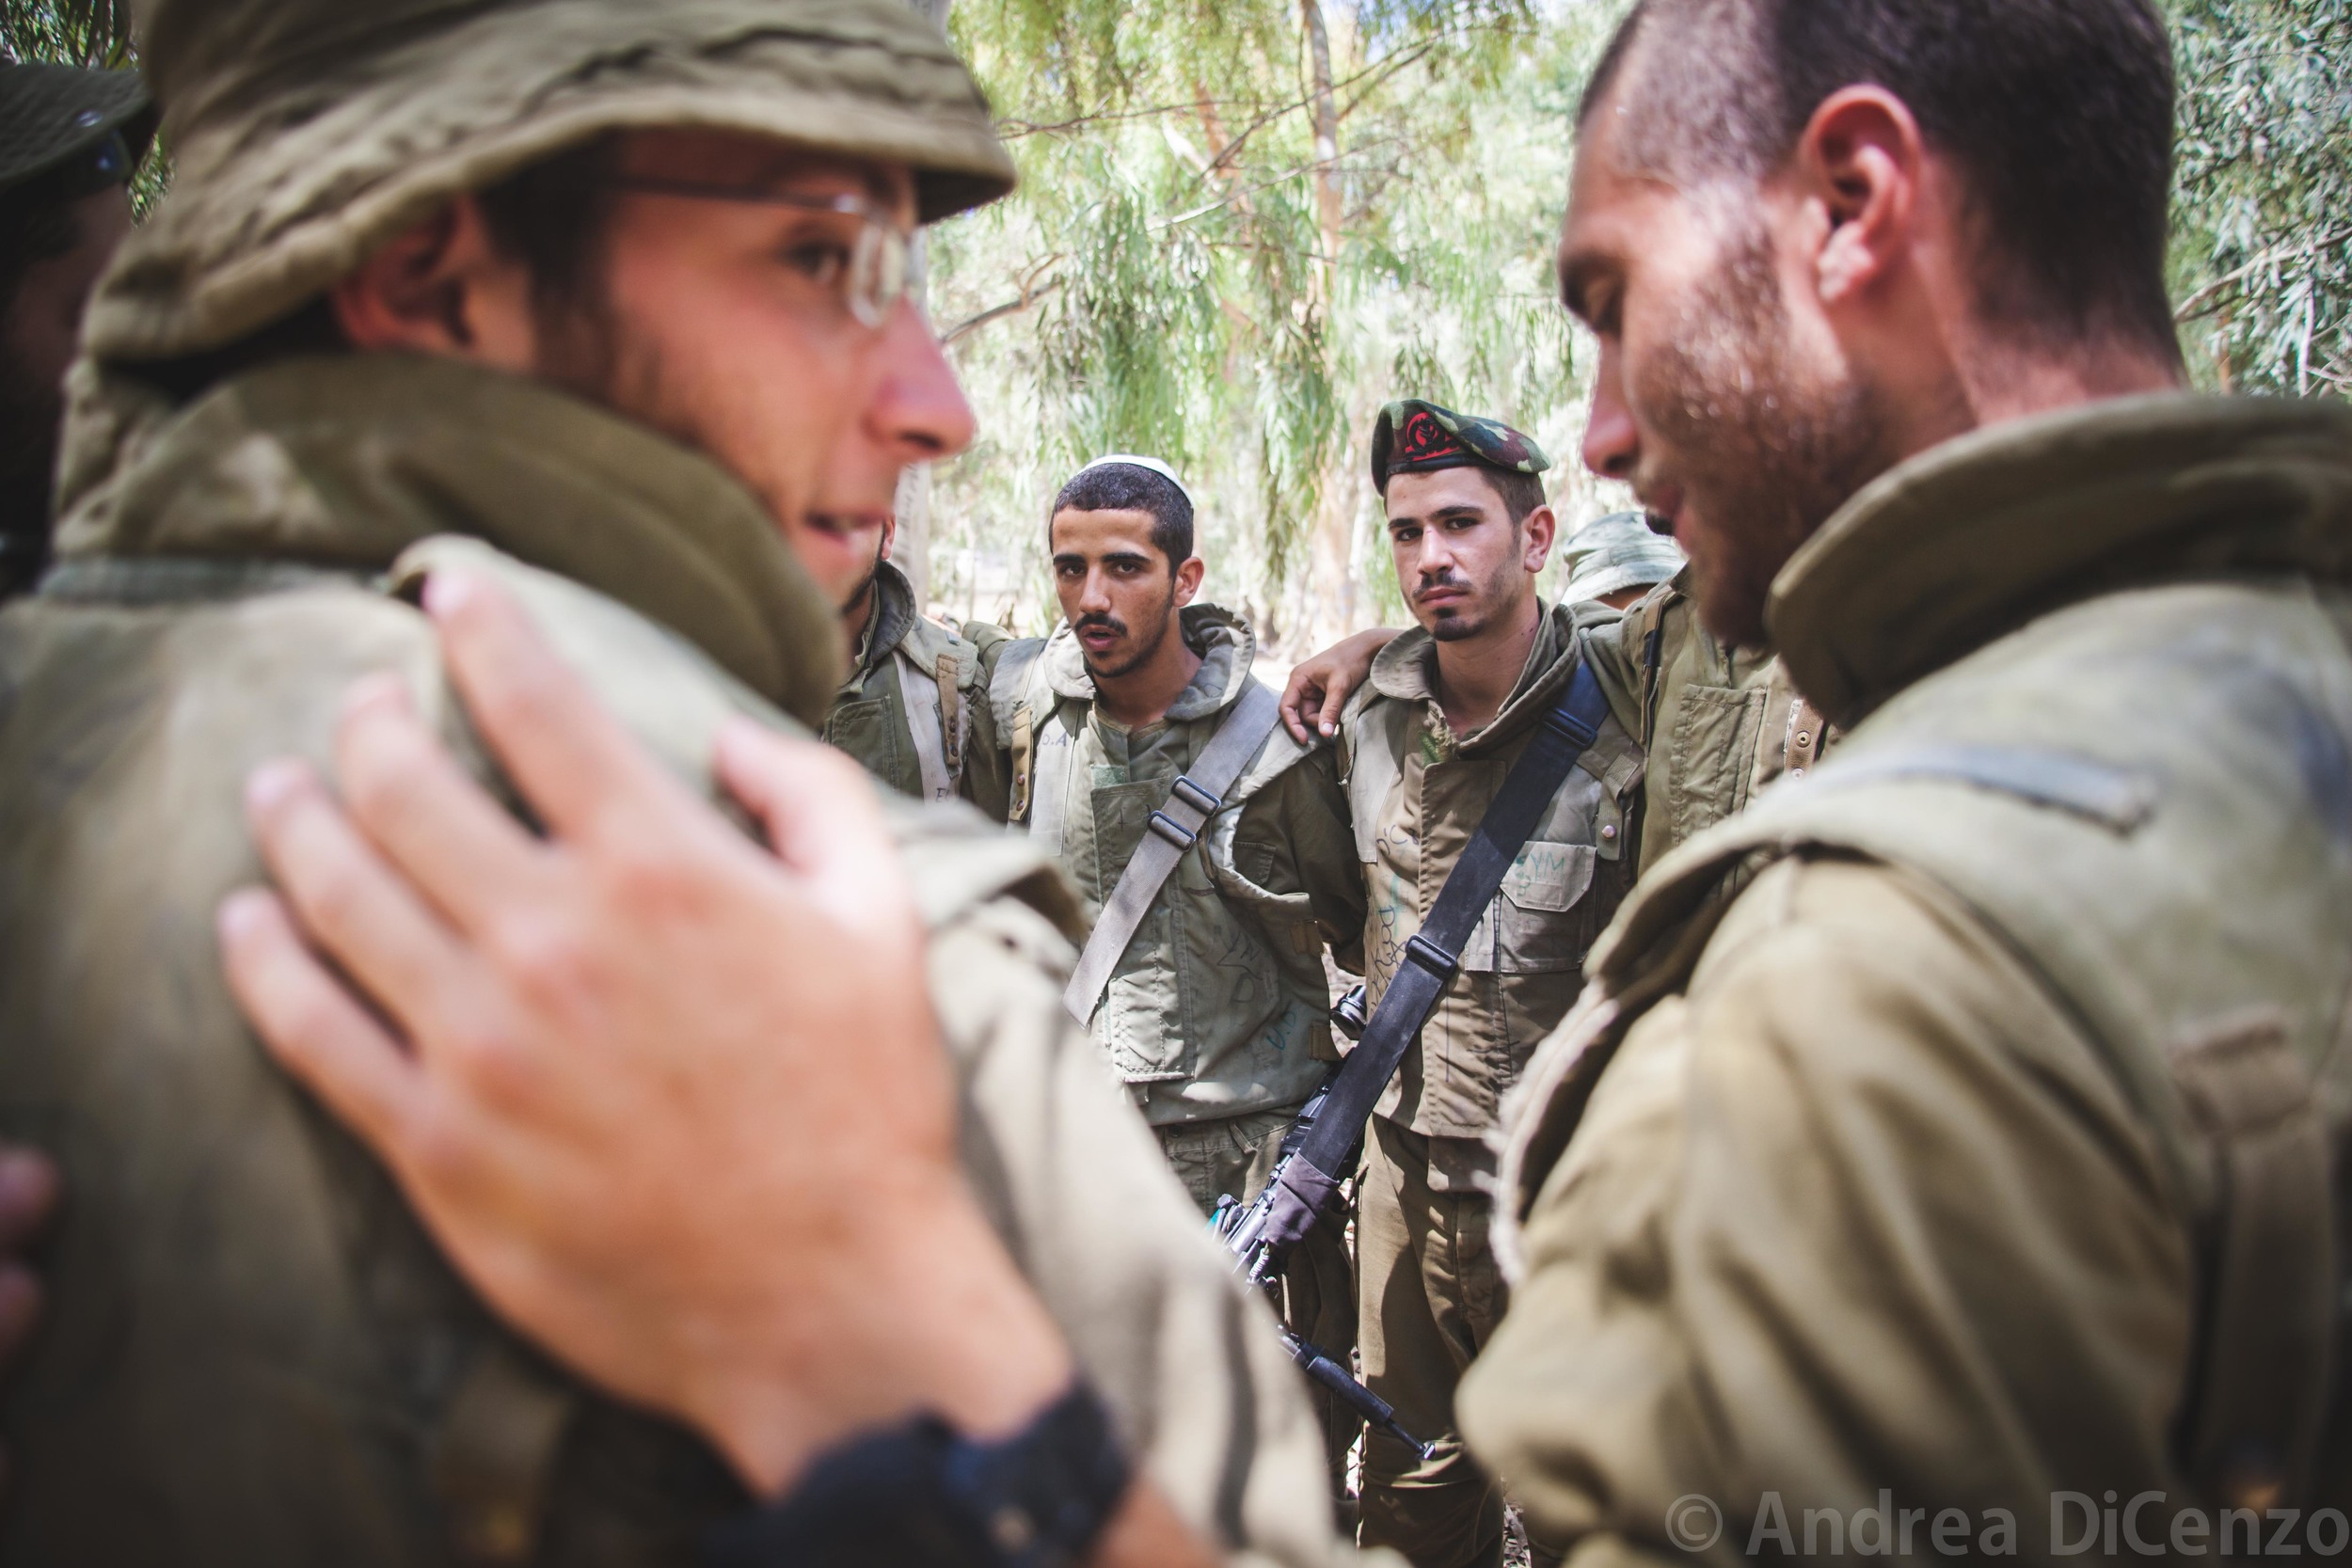 IDF soldiers chant songs and prayers as they await further instructions along the border of Gaza. These men are part of an additional 18,000 soldiers that have been called up to the border as part of Operation Protective Edge.